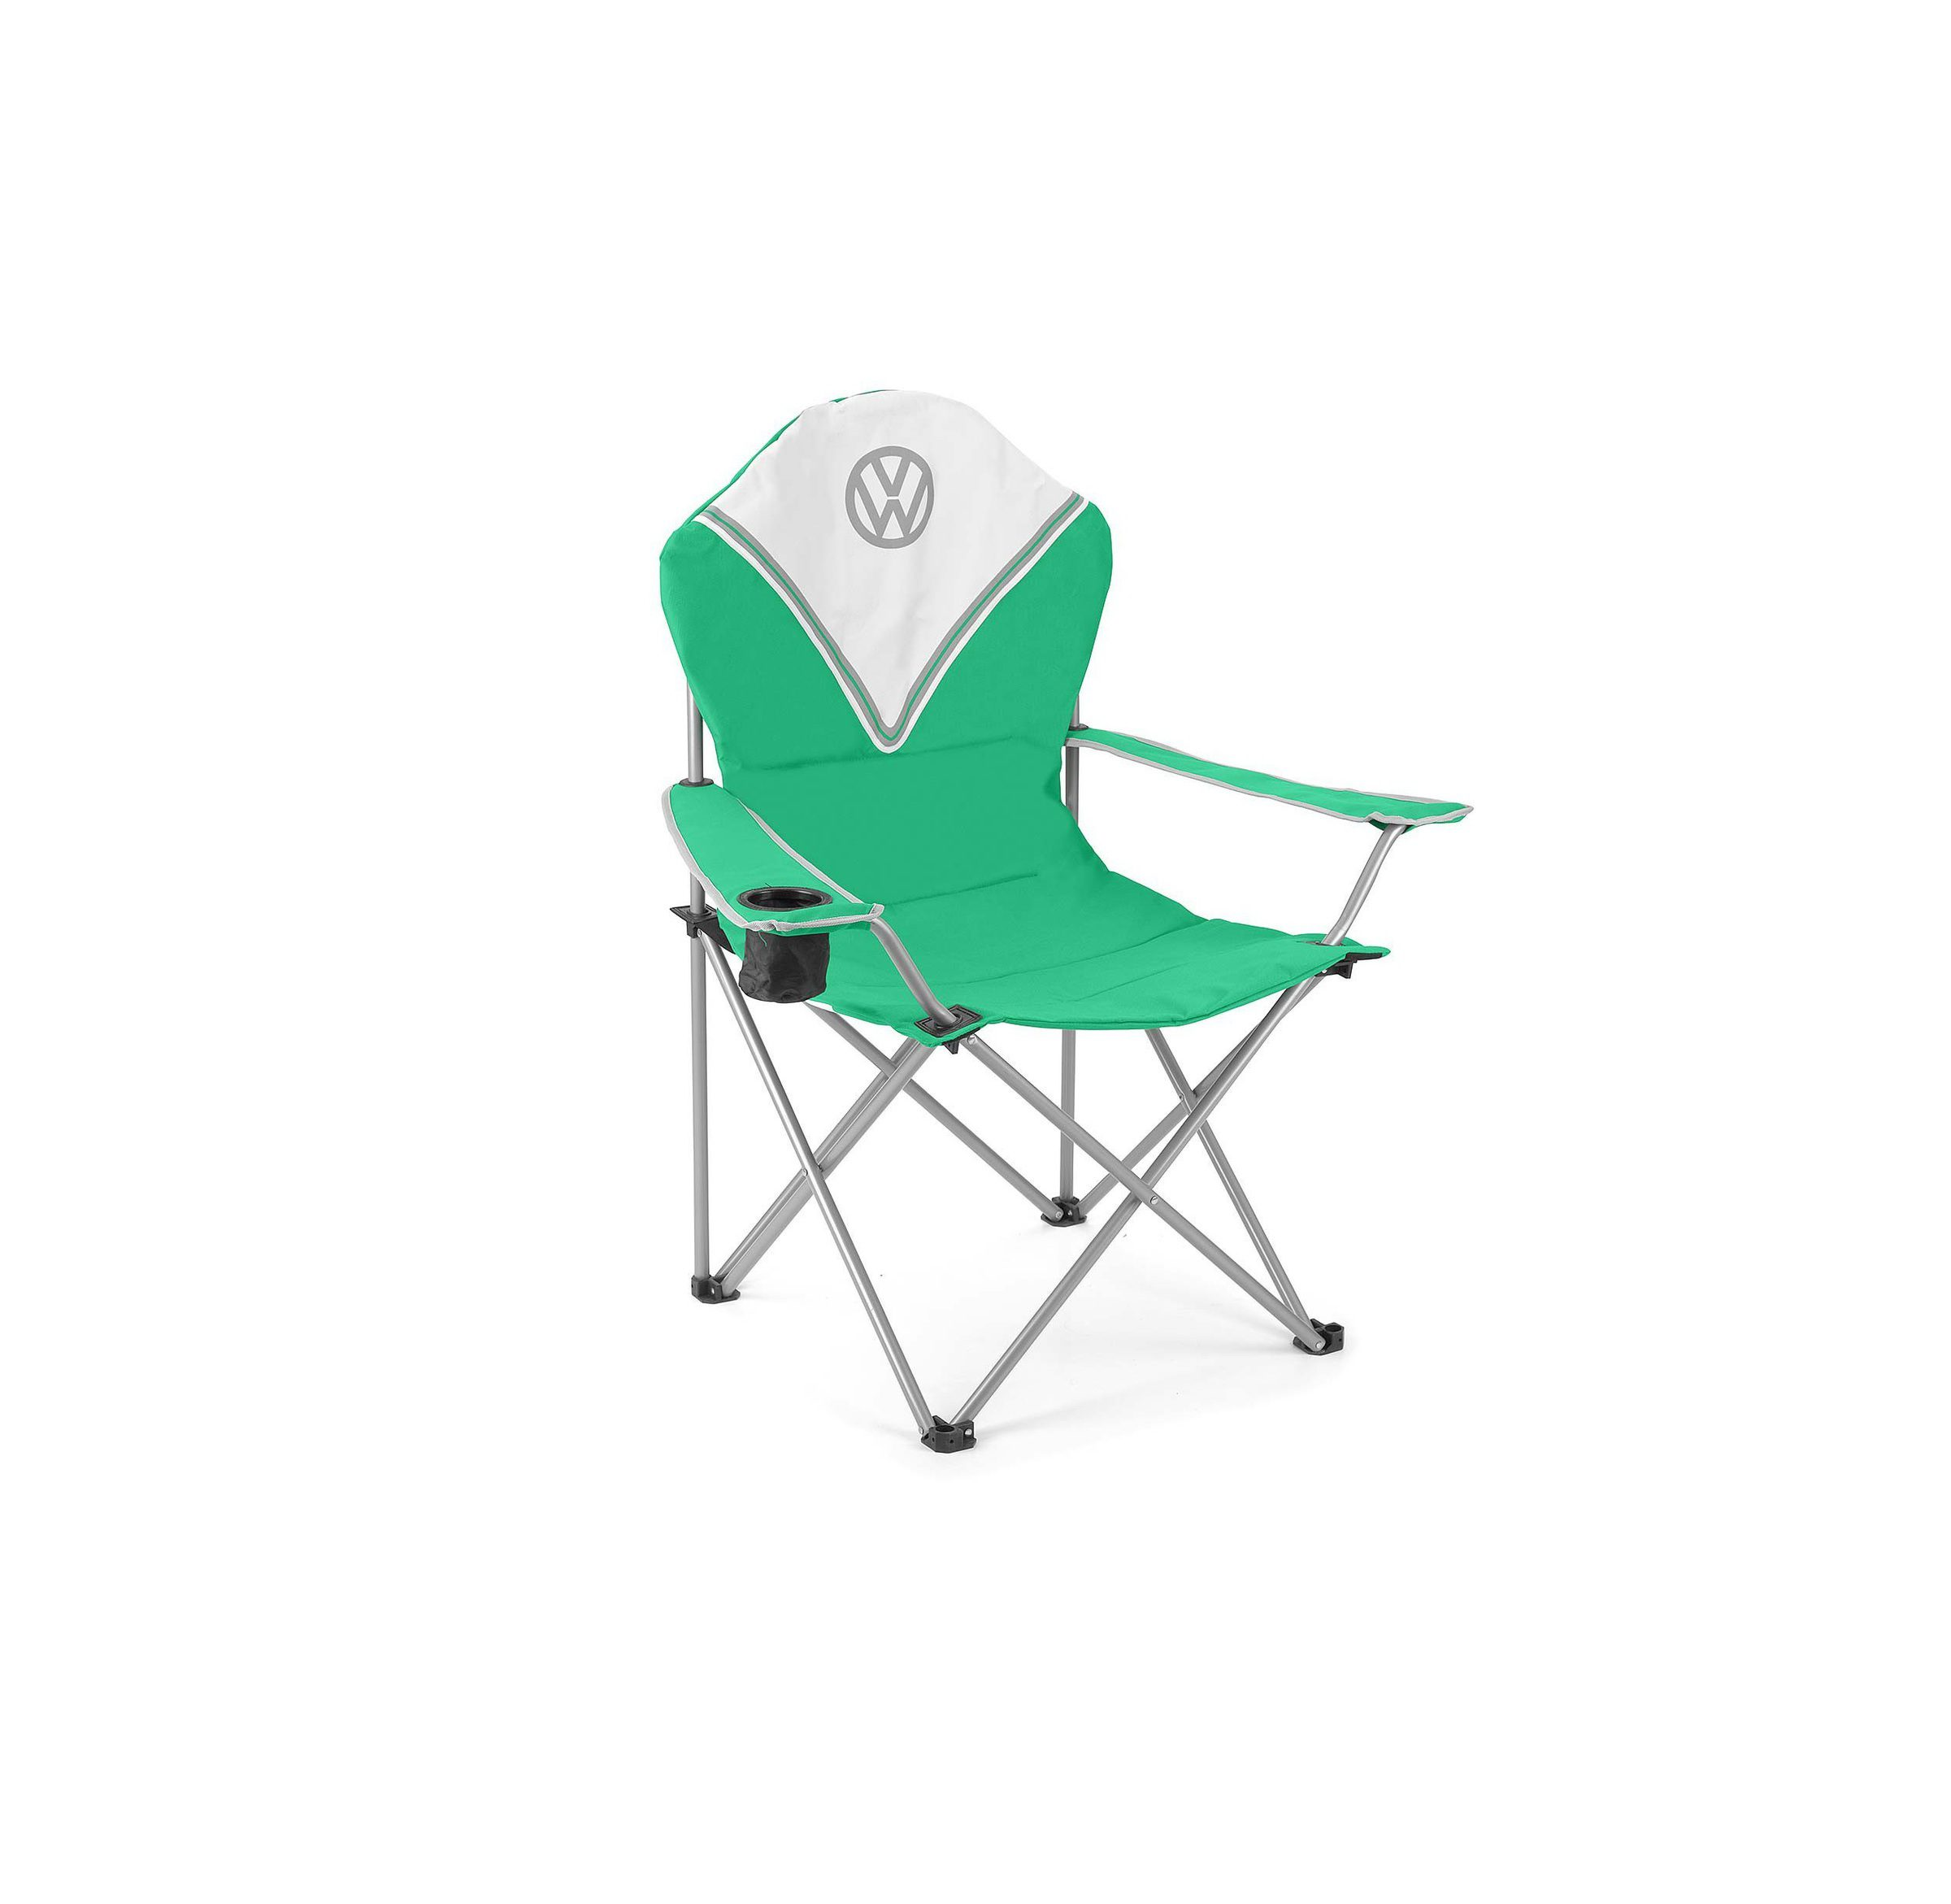 Vw Deluxe Padded Chair Green